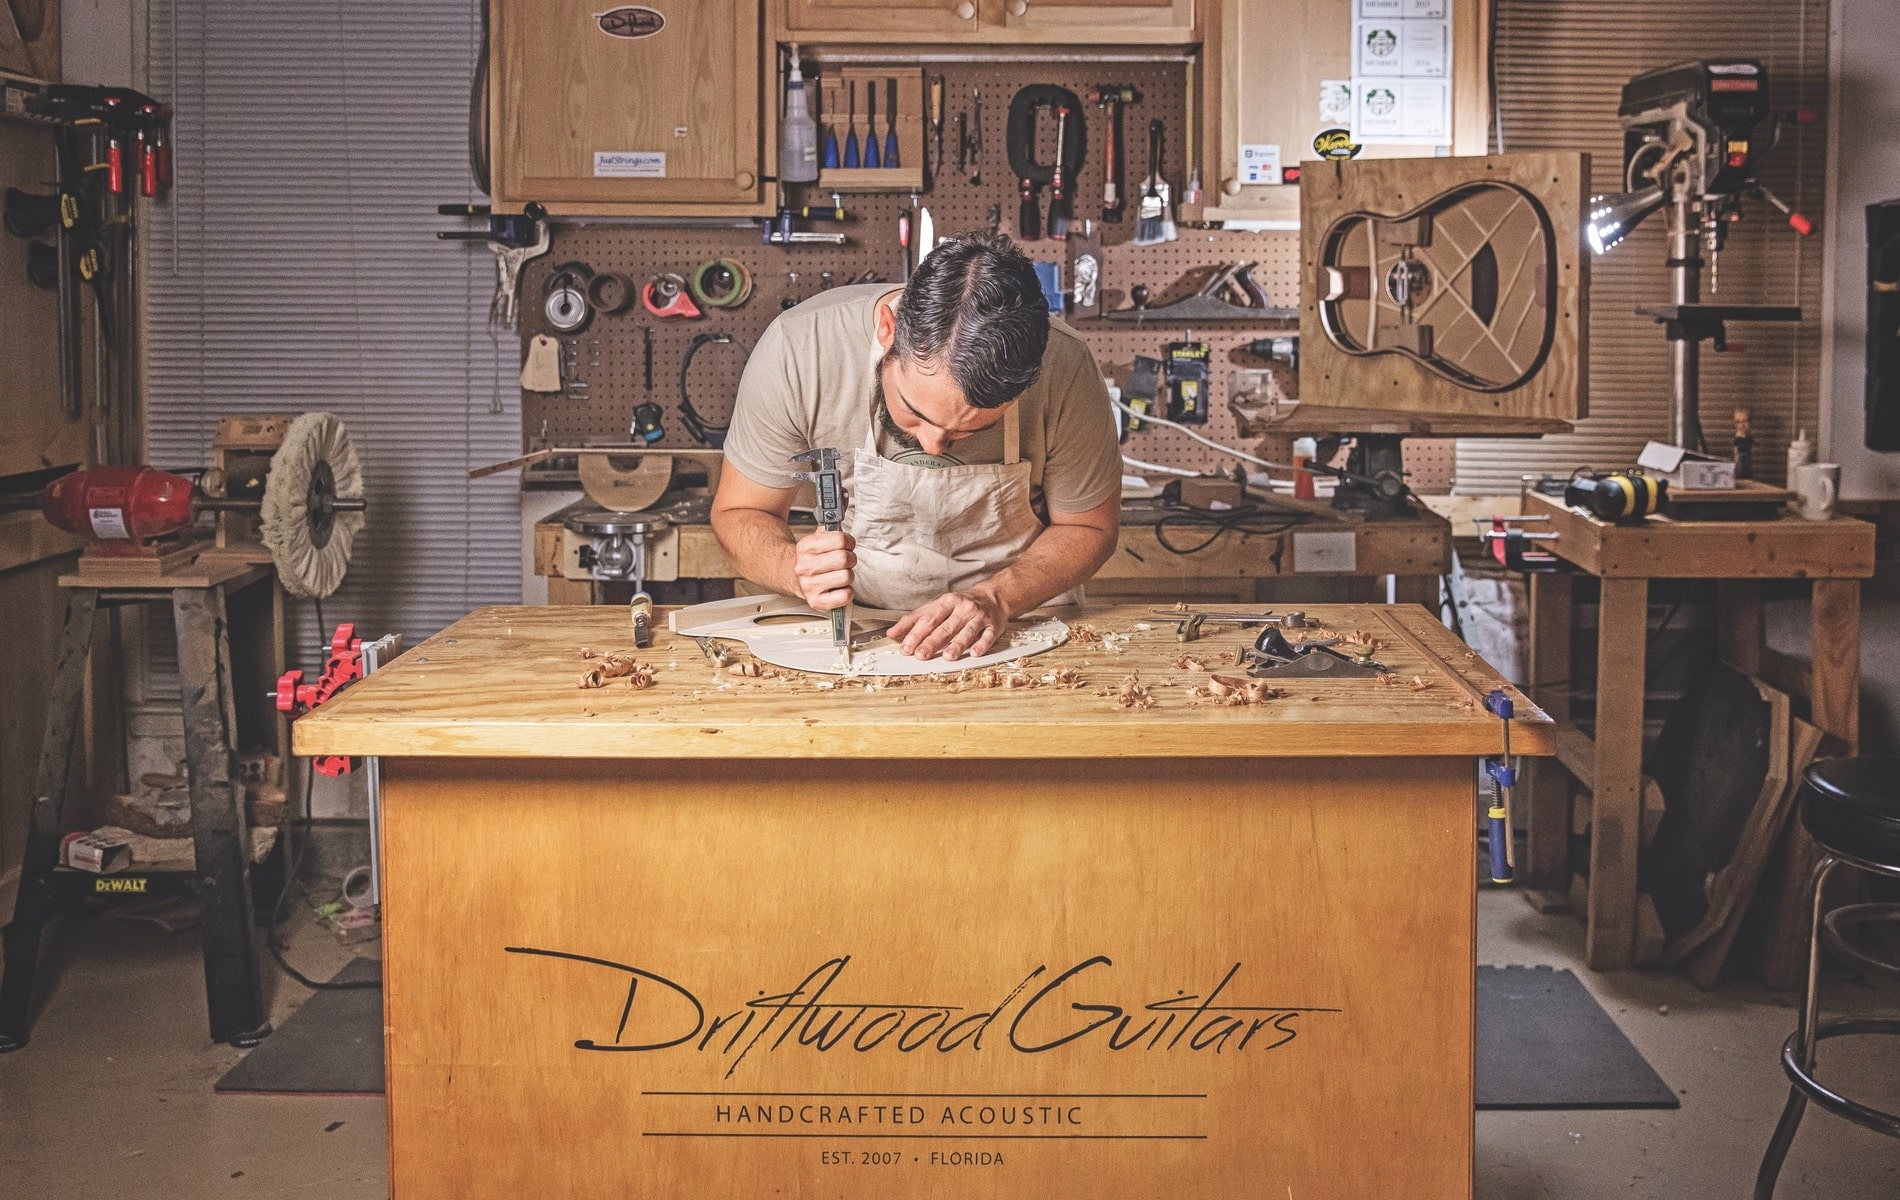 Chris Alvarado, Driftwood Guitars